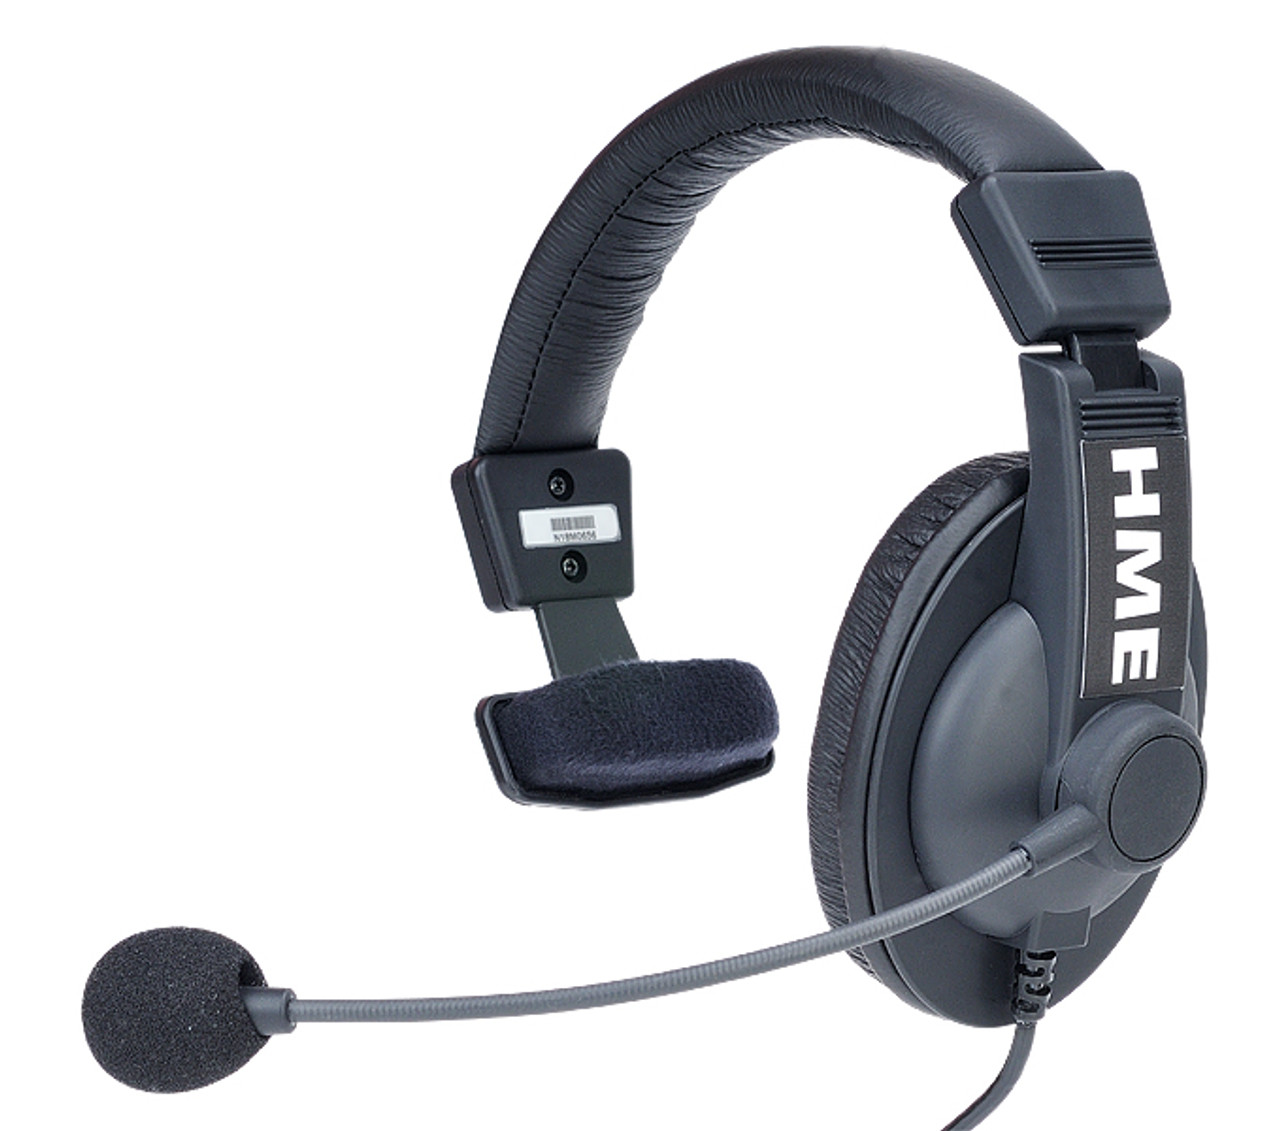 ee8af3fb92d HME HS15 Single-Muff Headset | Intercom Systems & Equipment for Live  Production | PNTA